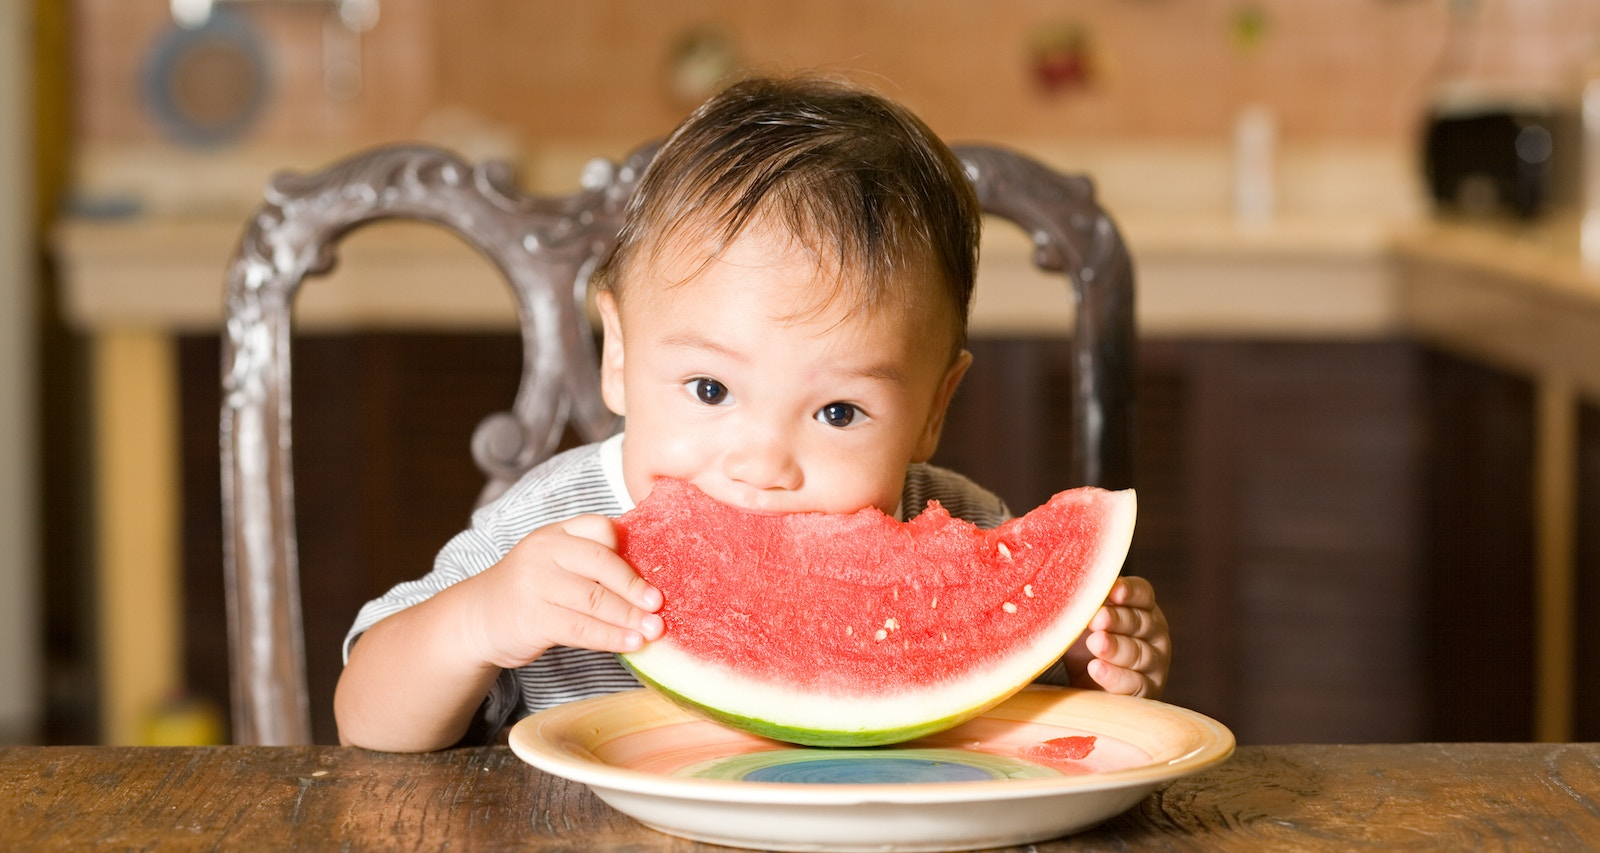 Developmental milestones and key nutrients for babies aged 0-6 month